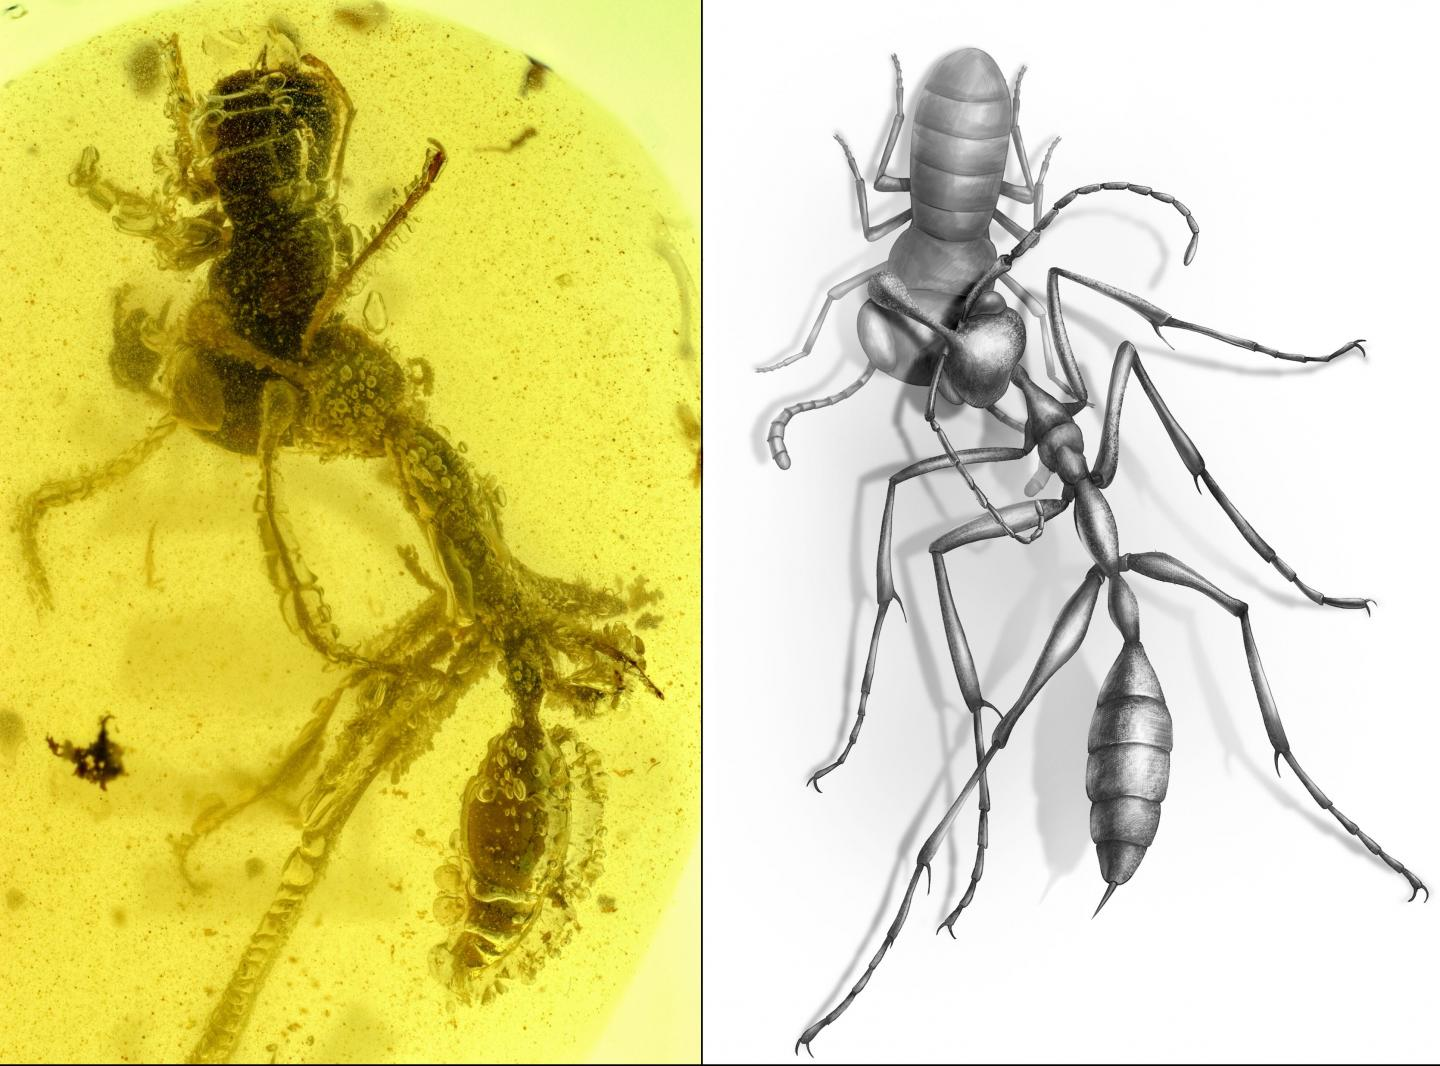 a side by side image. on the left are two insects, an ant and wasp, fossilized in amber. on the right is an illustration of what the ant and wasp could have looked like alive